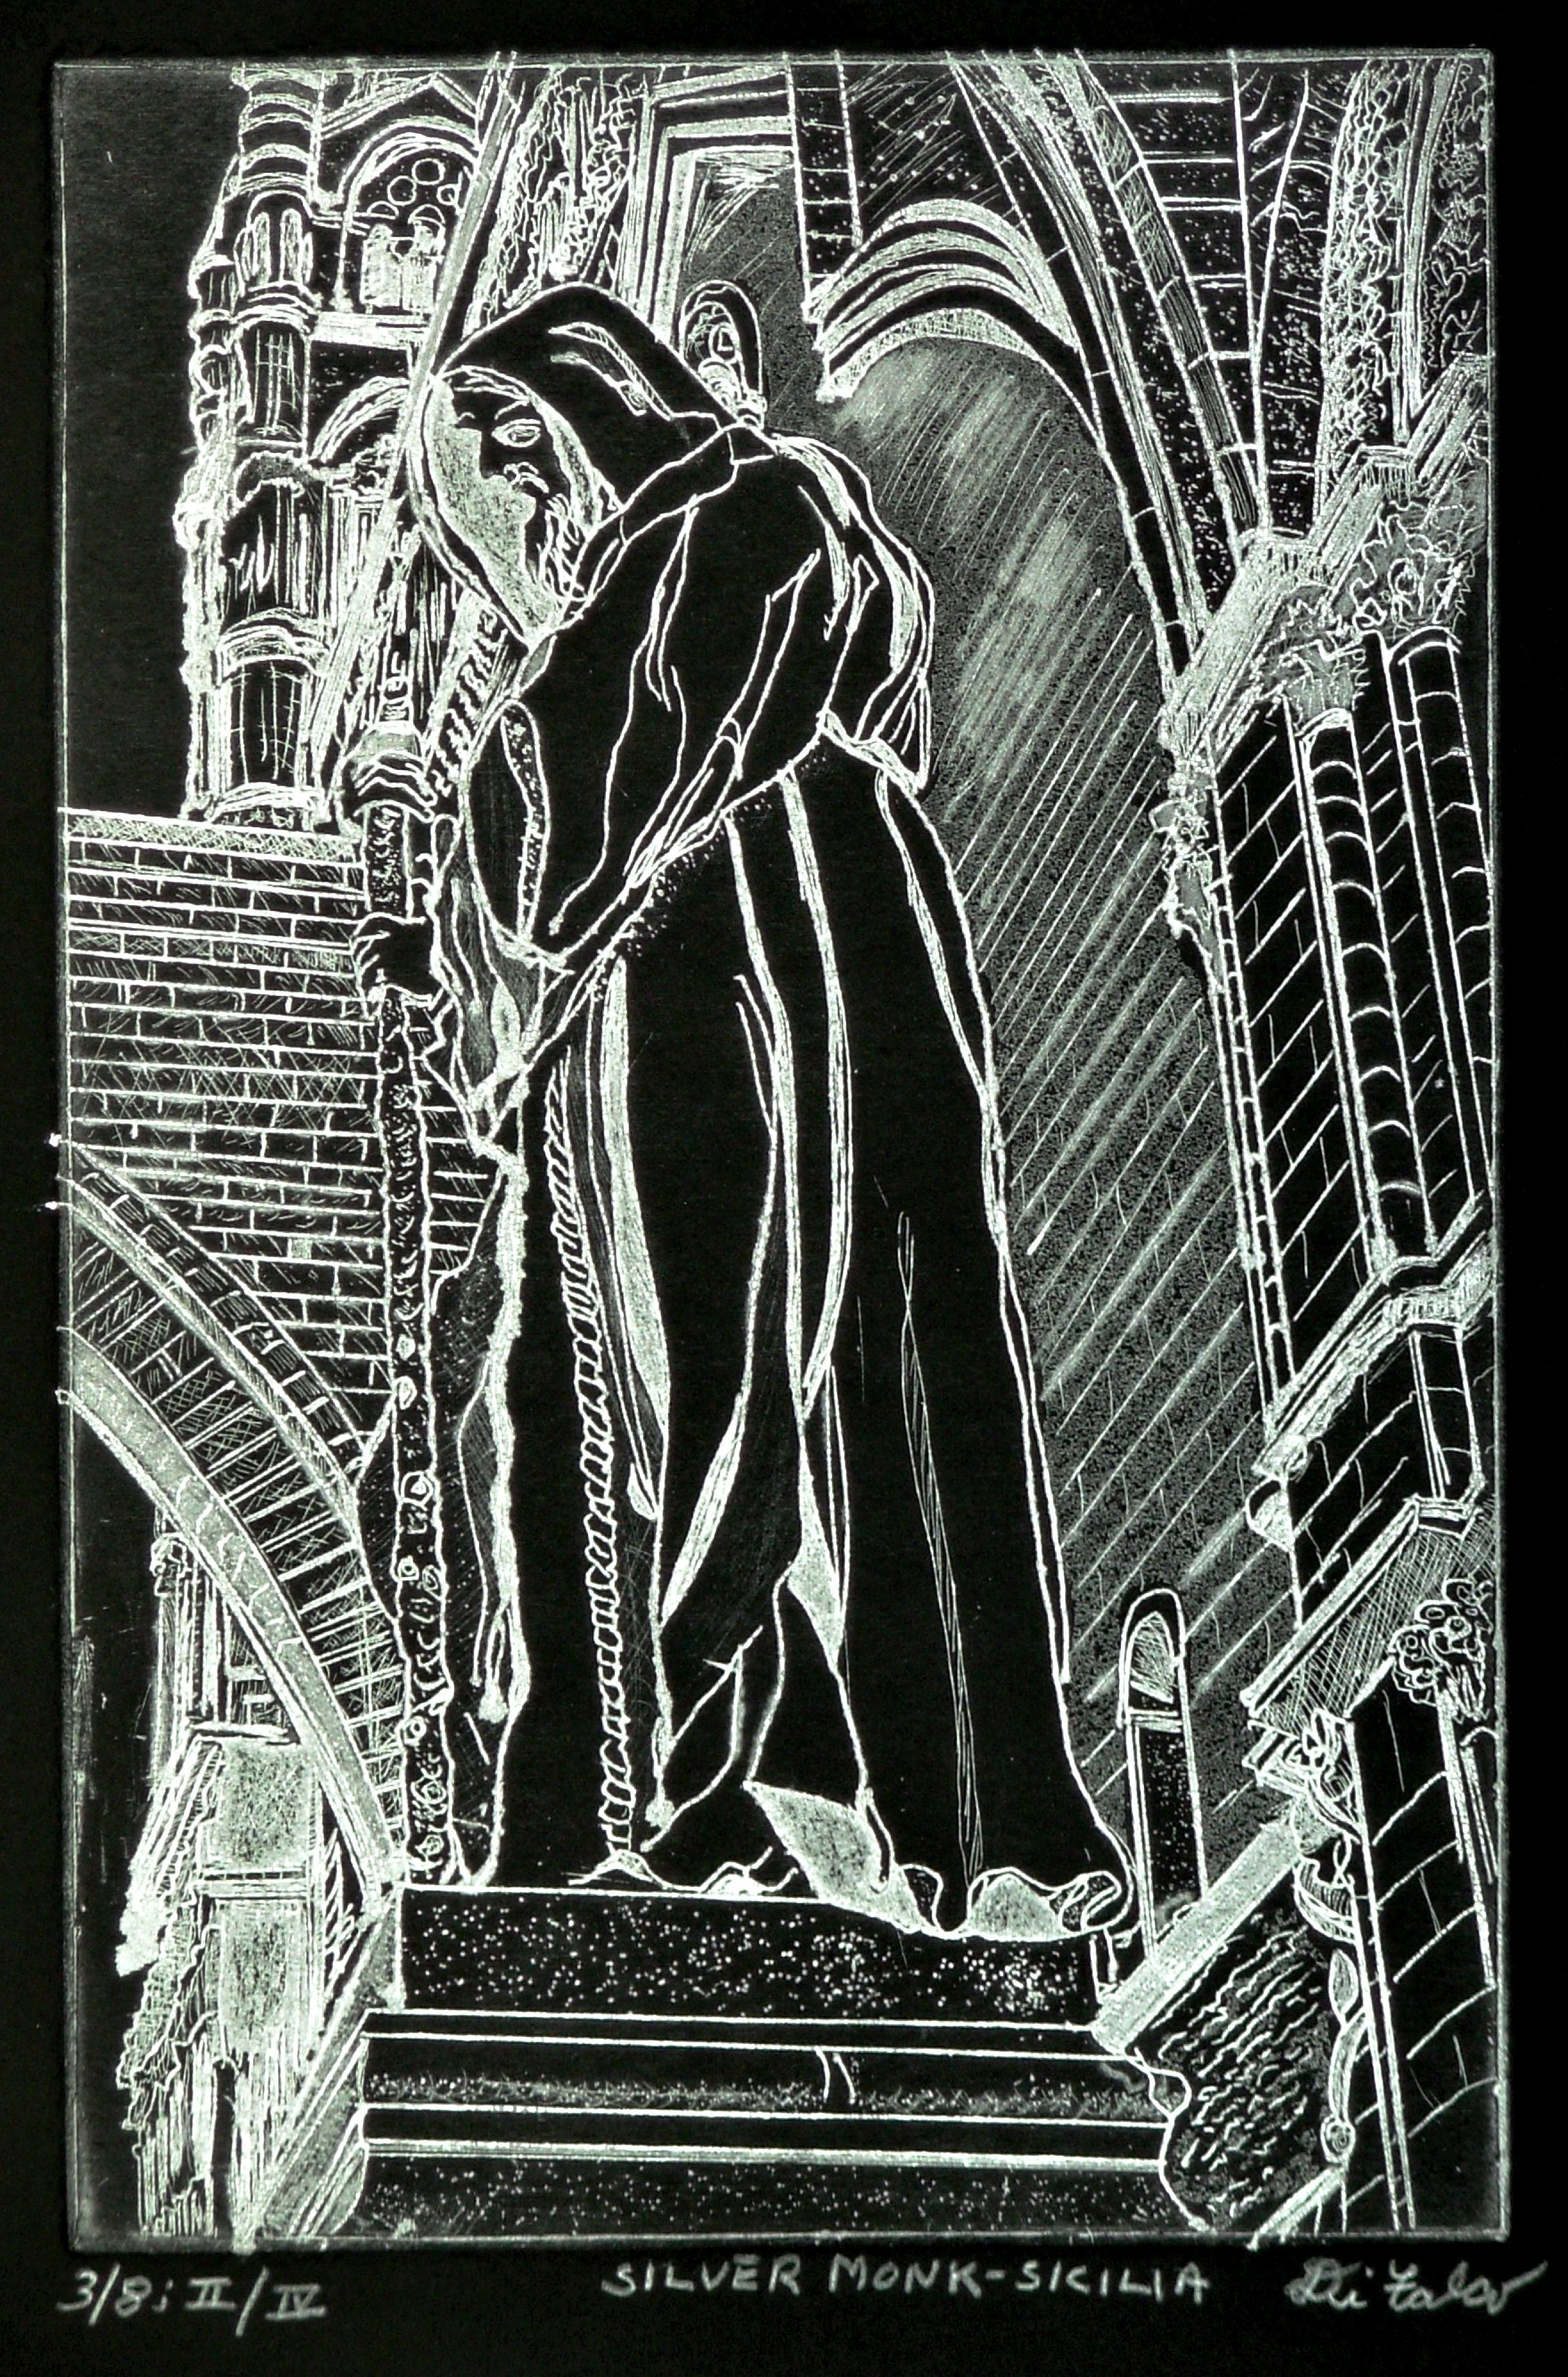 Jerry  Di Falco: 'Silver Monk in Sicily', 2015 Intaglio, Landmarks. Title THE SILVER MONK, SICILIAThe zinc plate used for this etching measured 6 inches wide by 9 inches high, or 15. 24cm by 22. 86cm. The print size is 13 inches wide by 15 inches high, or about 33. 020cm x 38. 100cm. My studio techniques included intaglio and ...